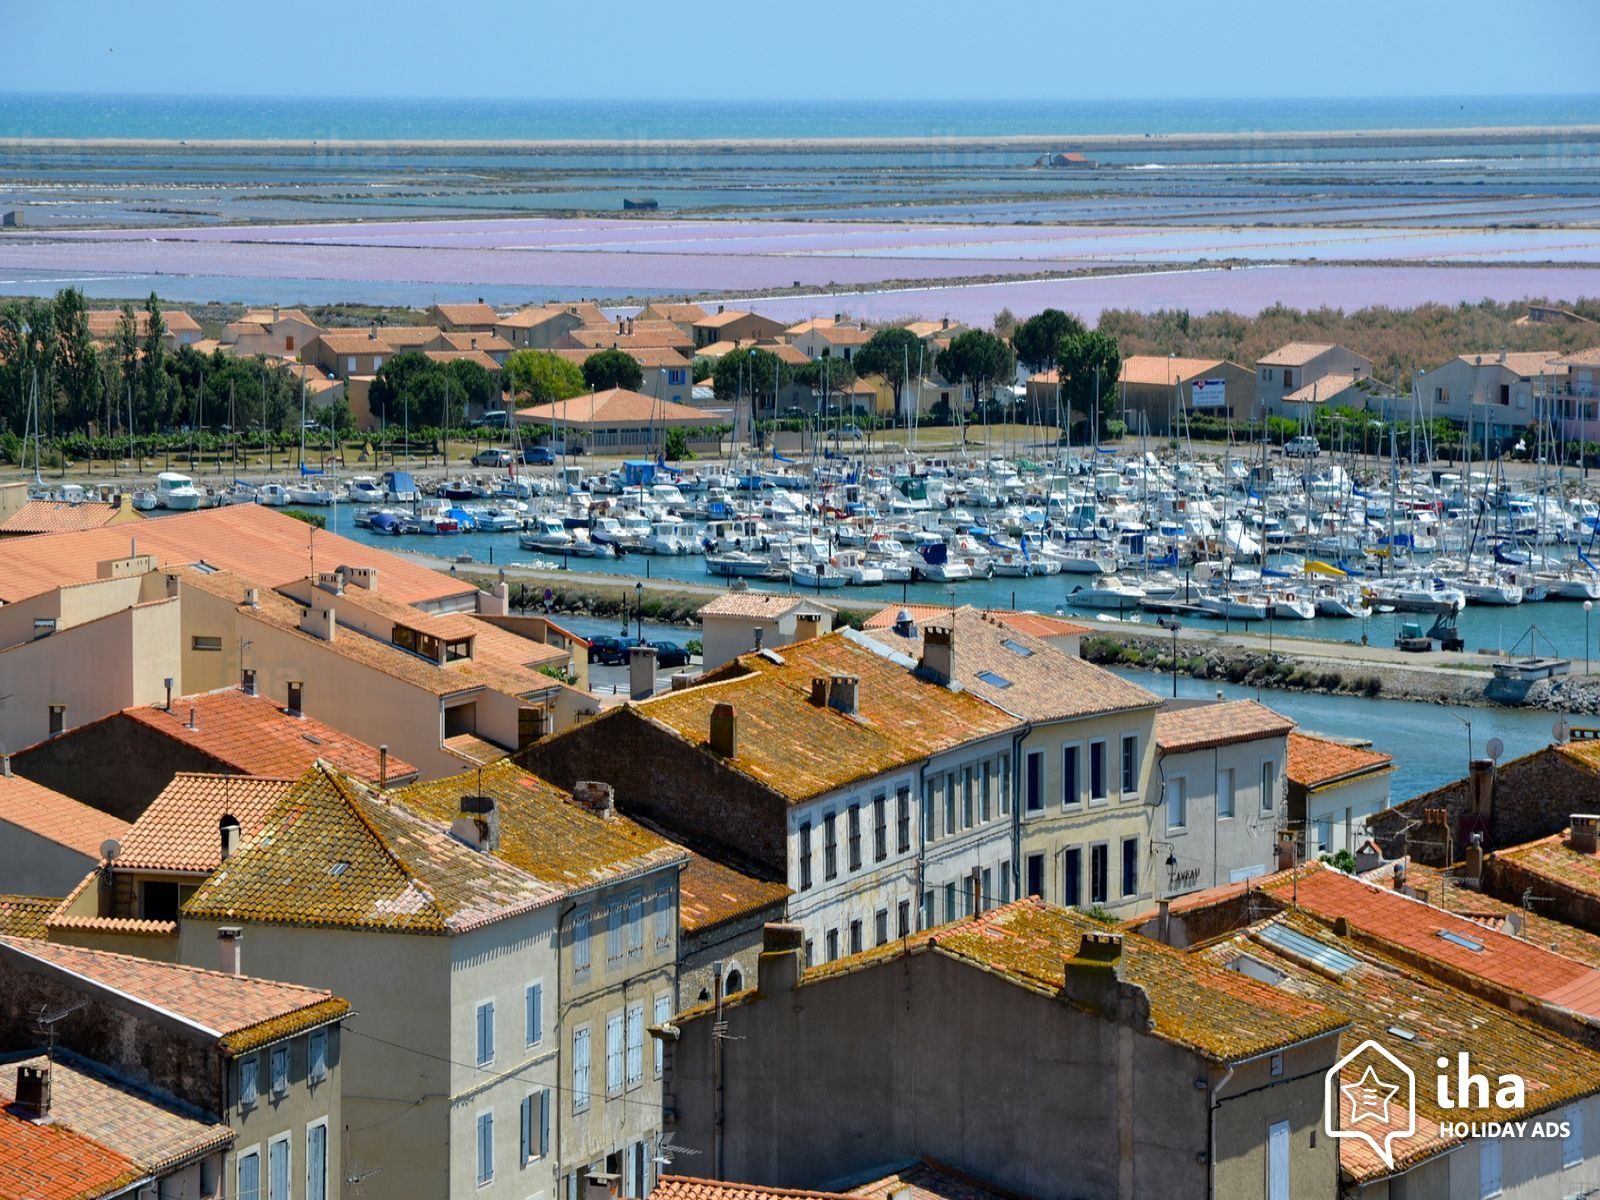 Saint-Pierre-sur-Mer rentals for your holidays with IHA direct